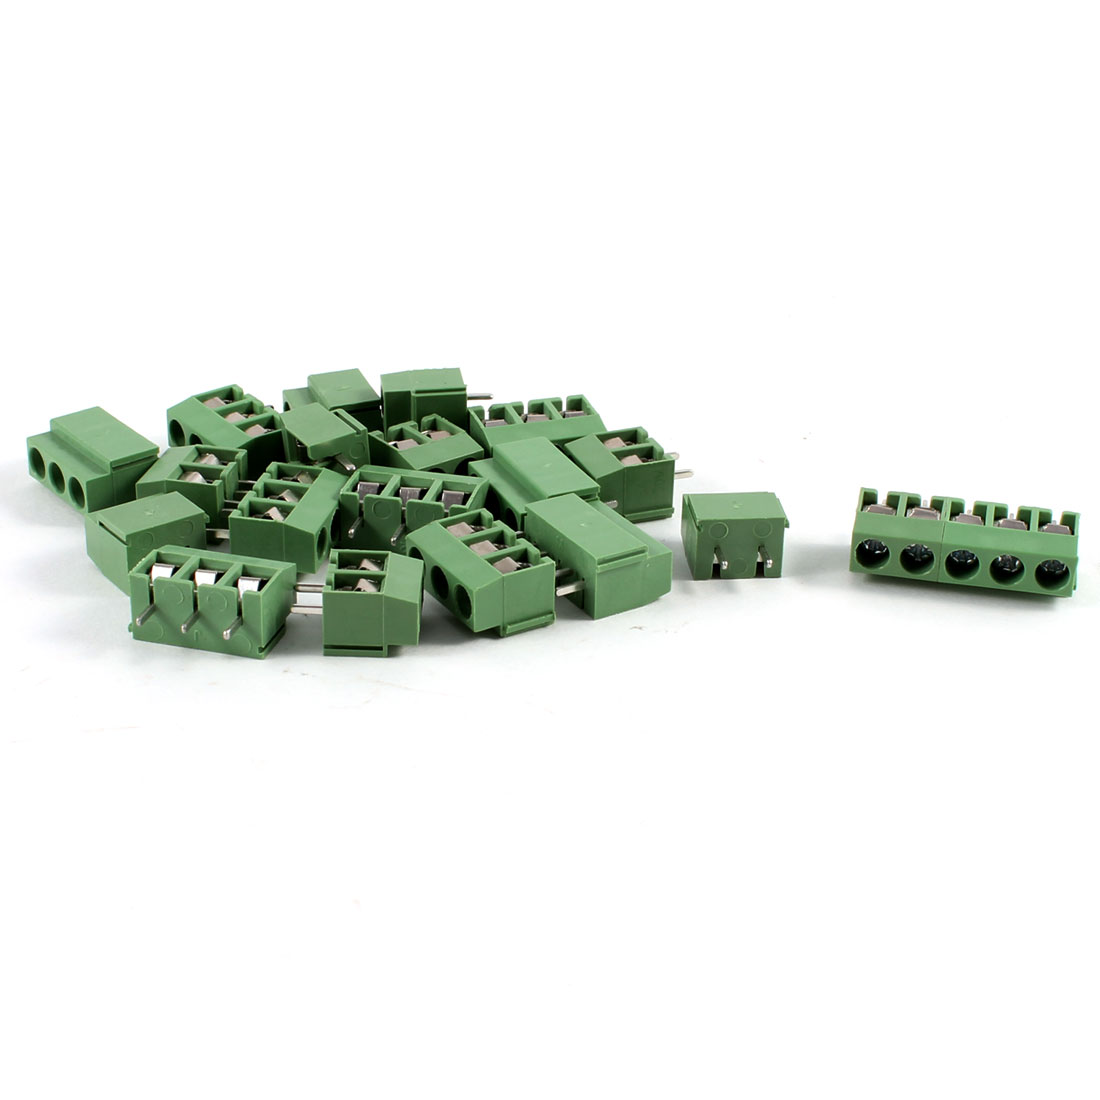 10Pcs 5 Pole 5mm Pitch PCB Mount Screw Terminal Block 8A 250V